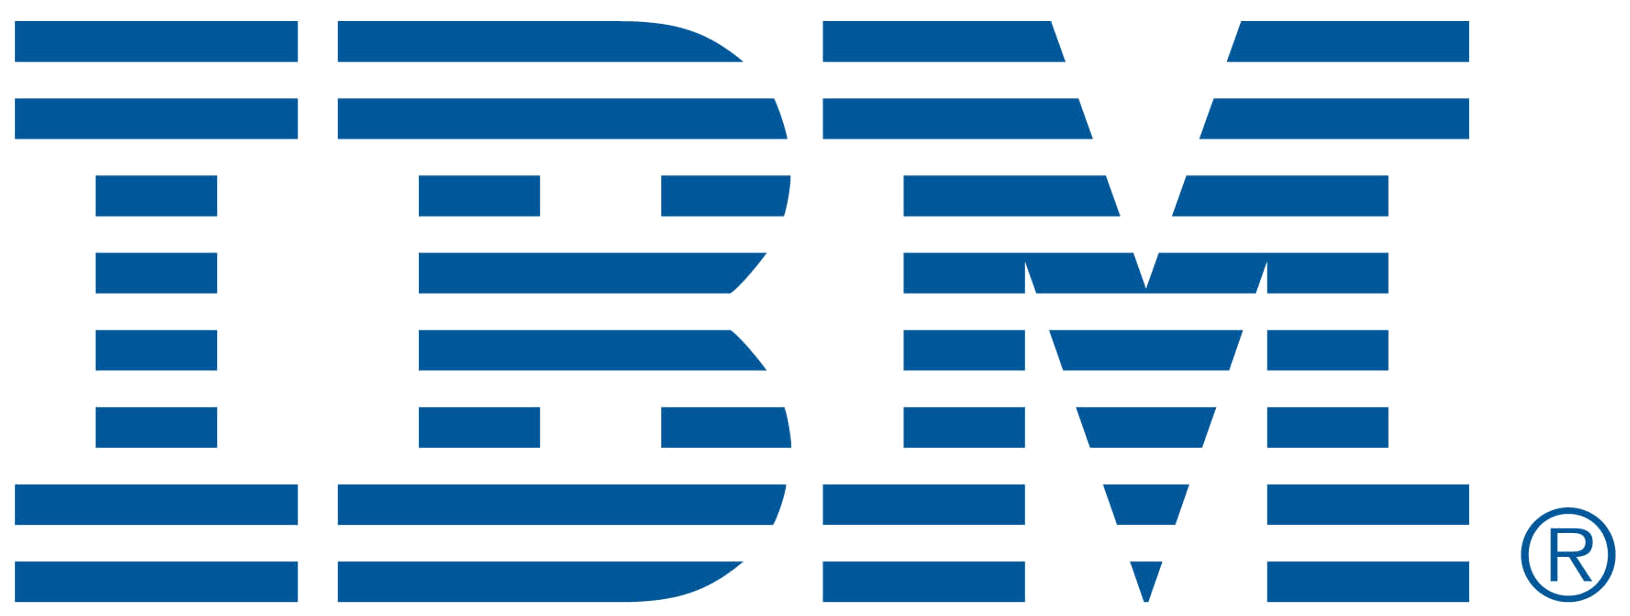 IBM Talent Management